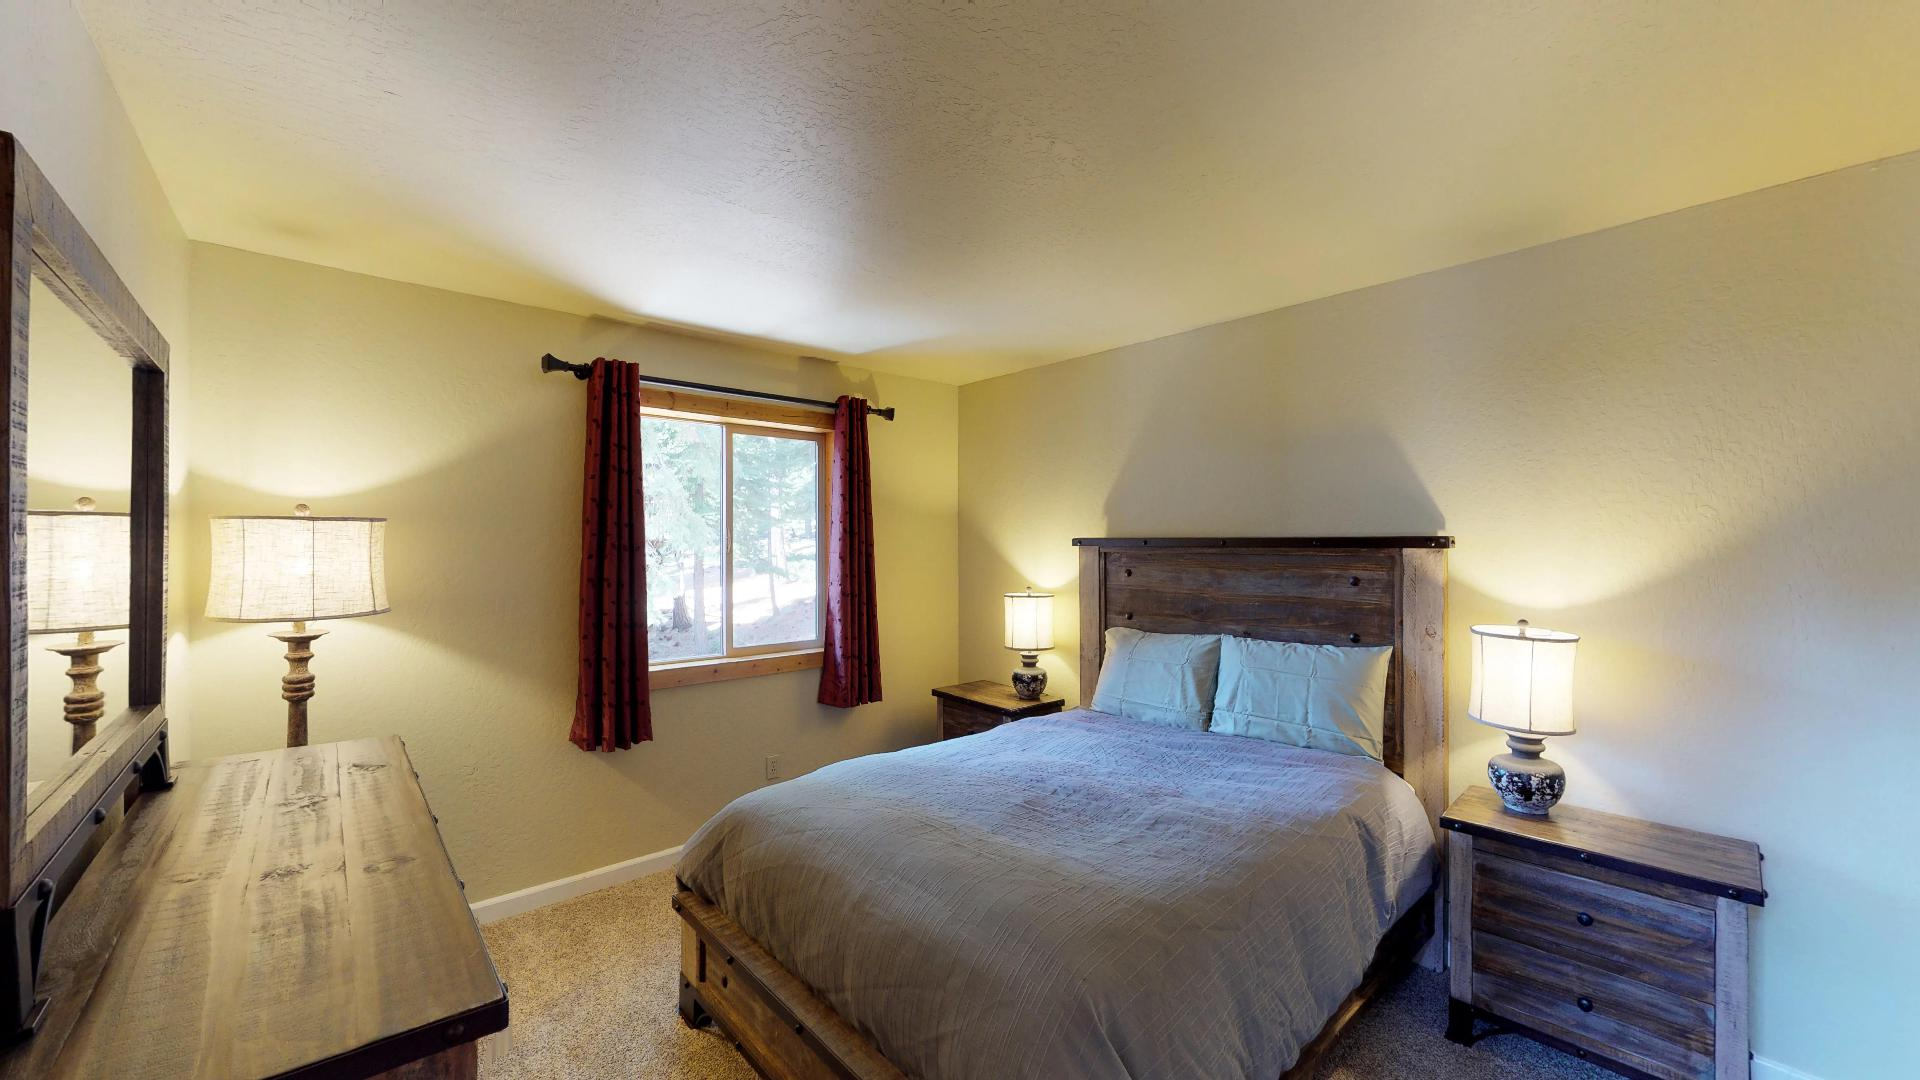 Bright and Spacious Bedroom in our Truckee Cabin Rental